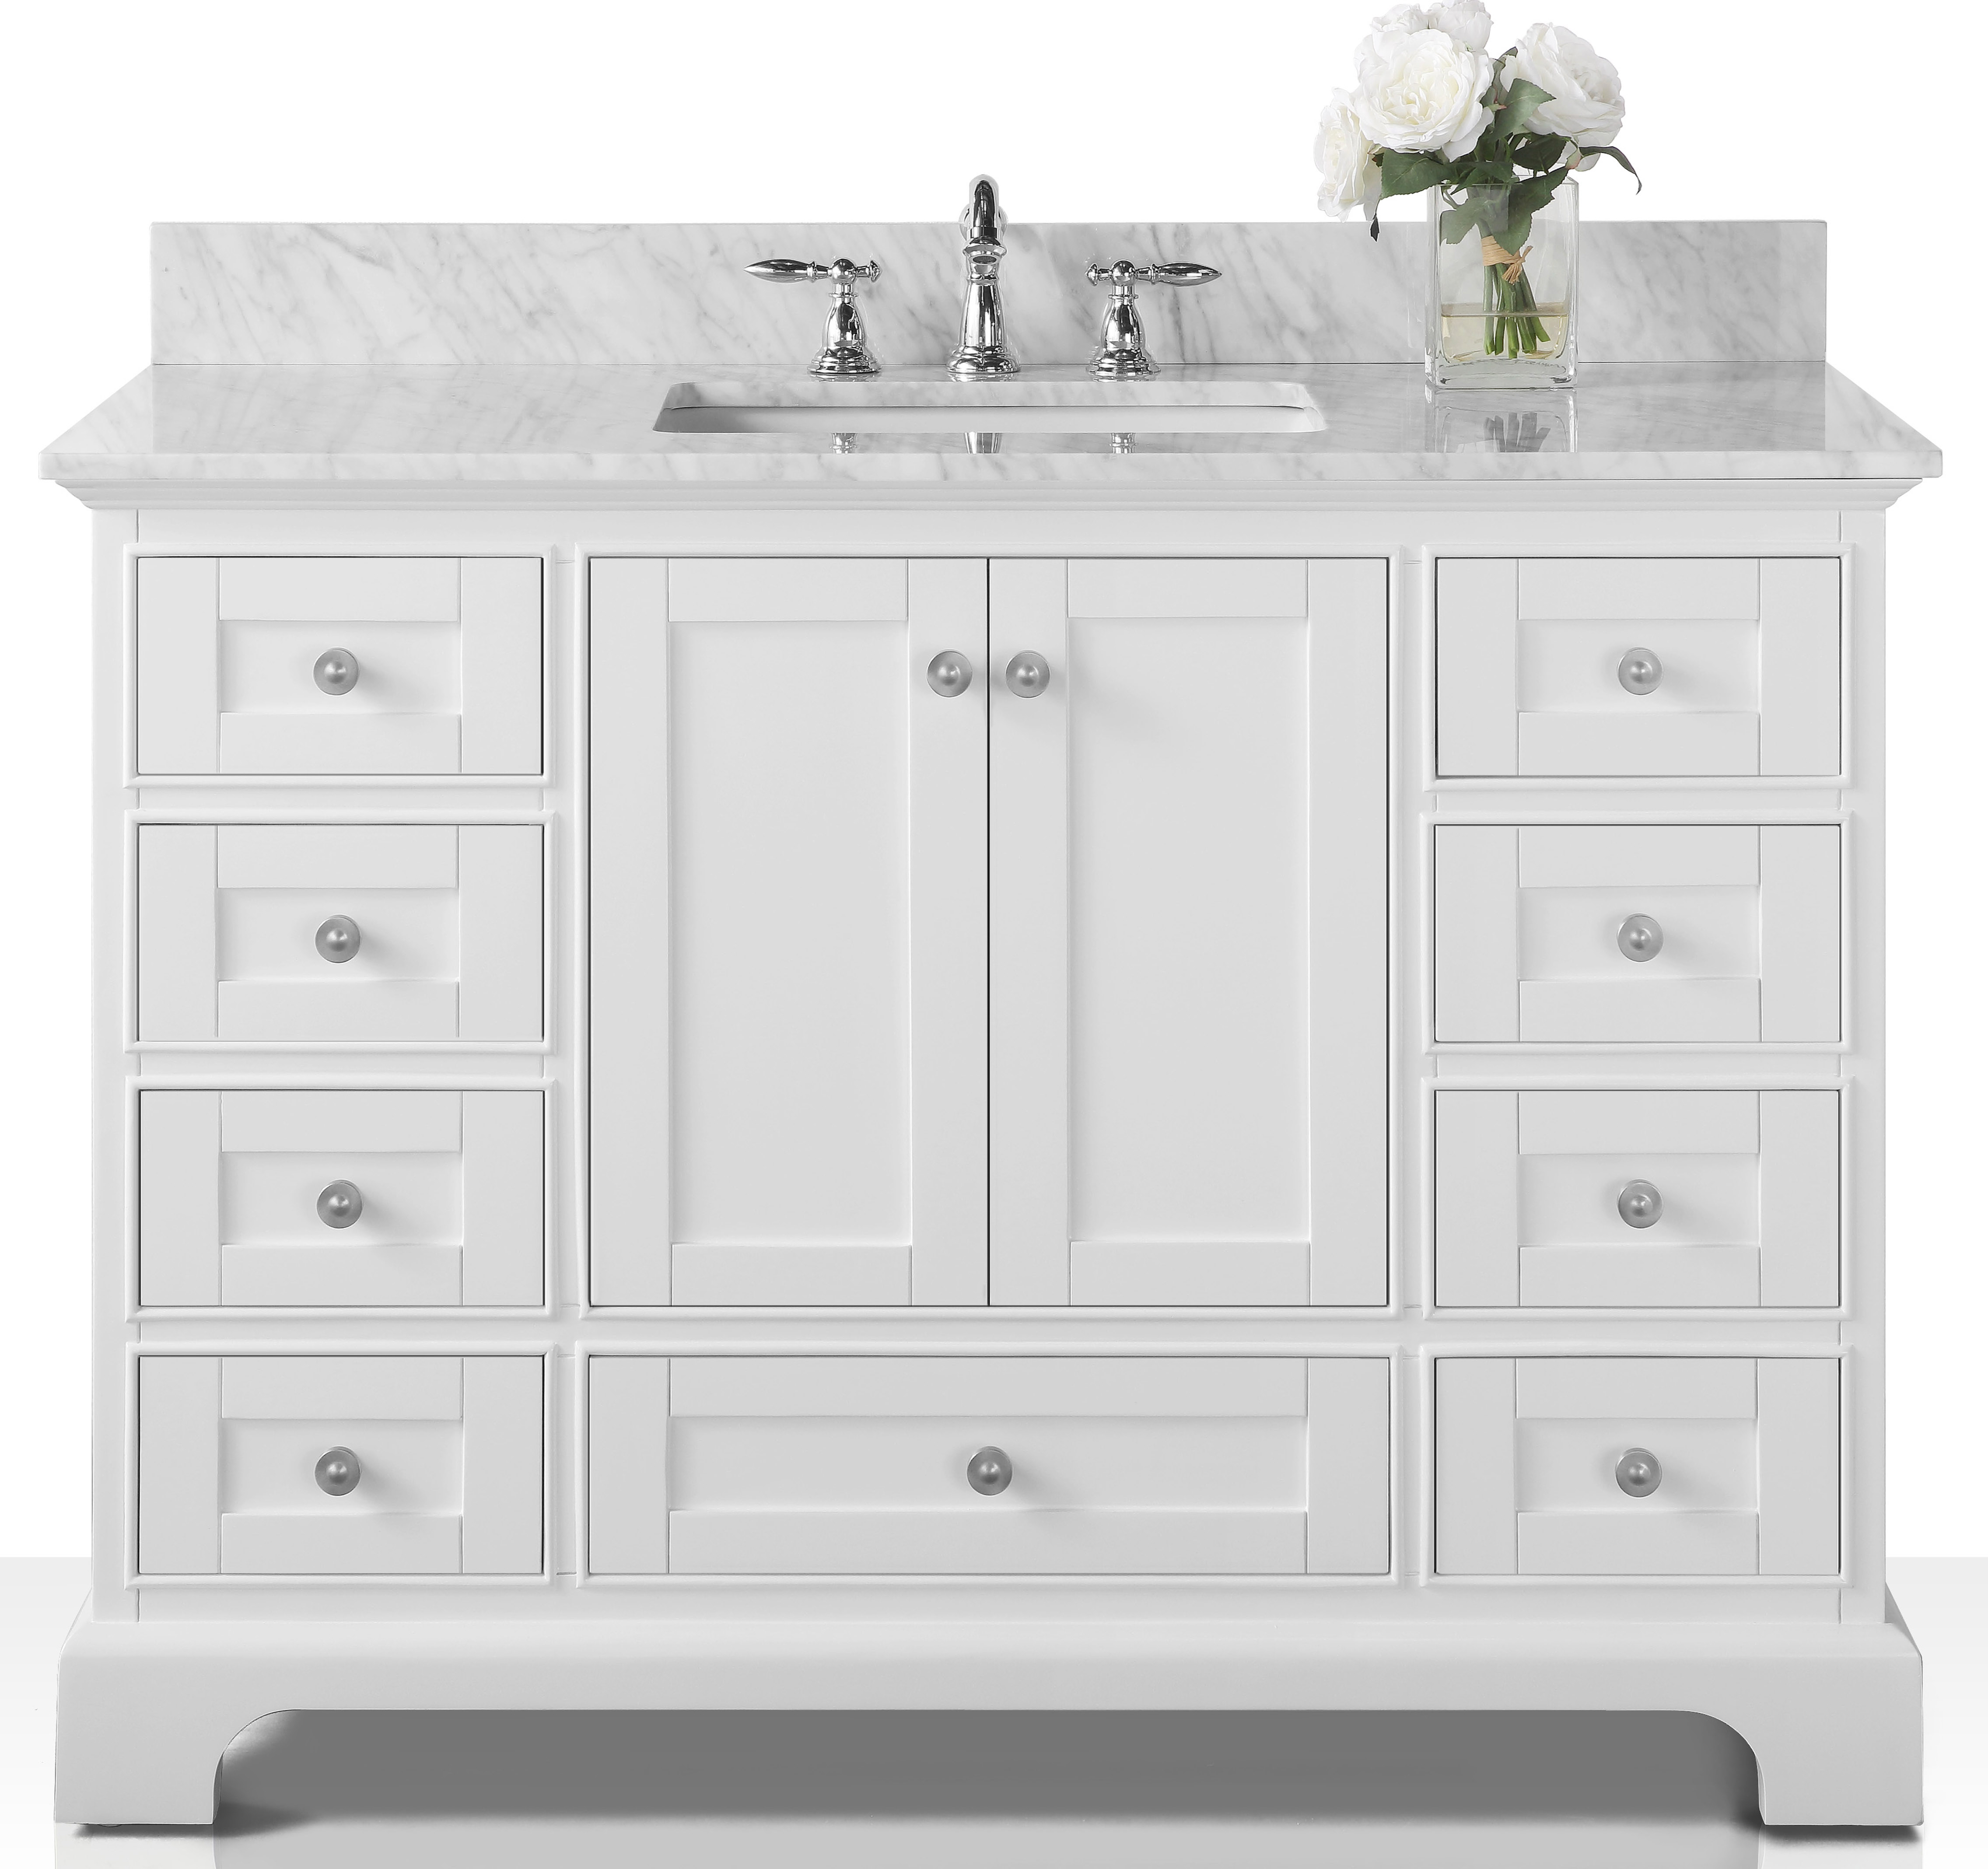 "48"" Bath Vanity Set in White with Italian Carrara White Marble Vanity Top and White Undermount Basin with Gold Hardware with Mirror Options"